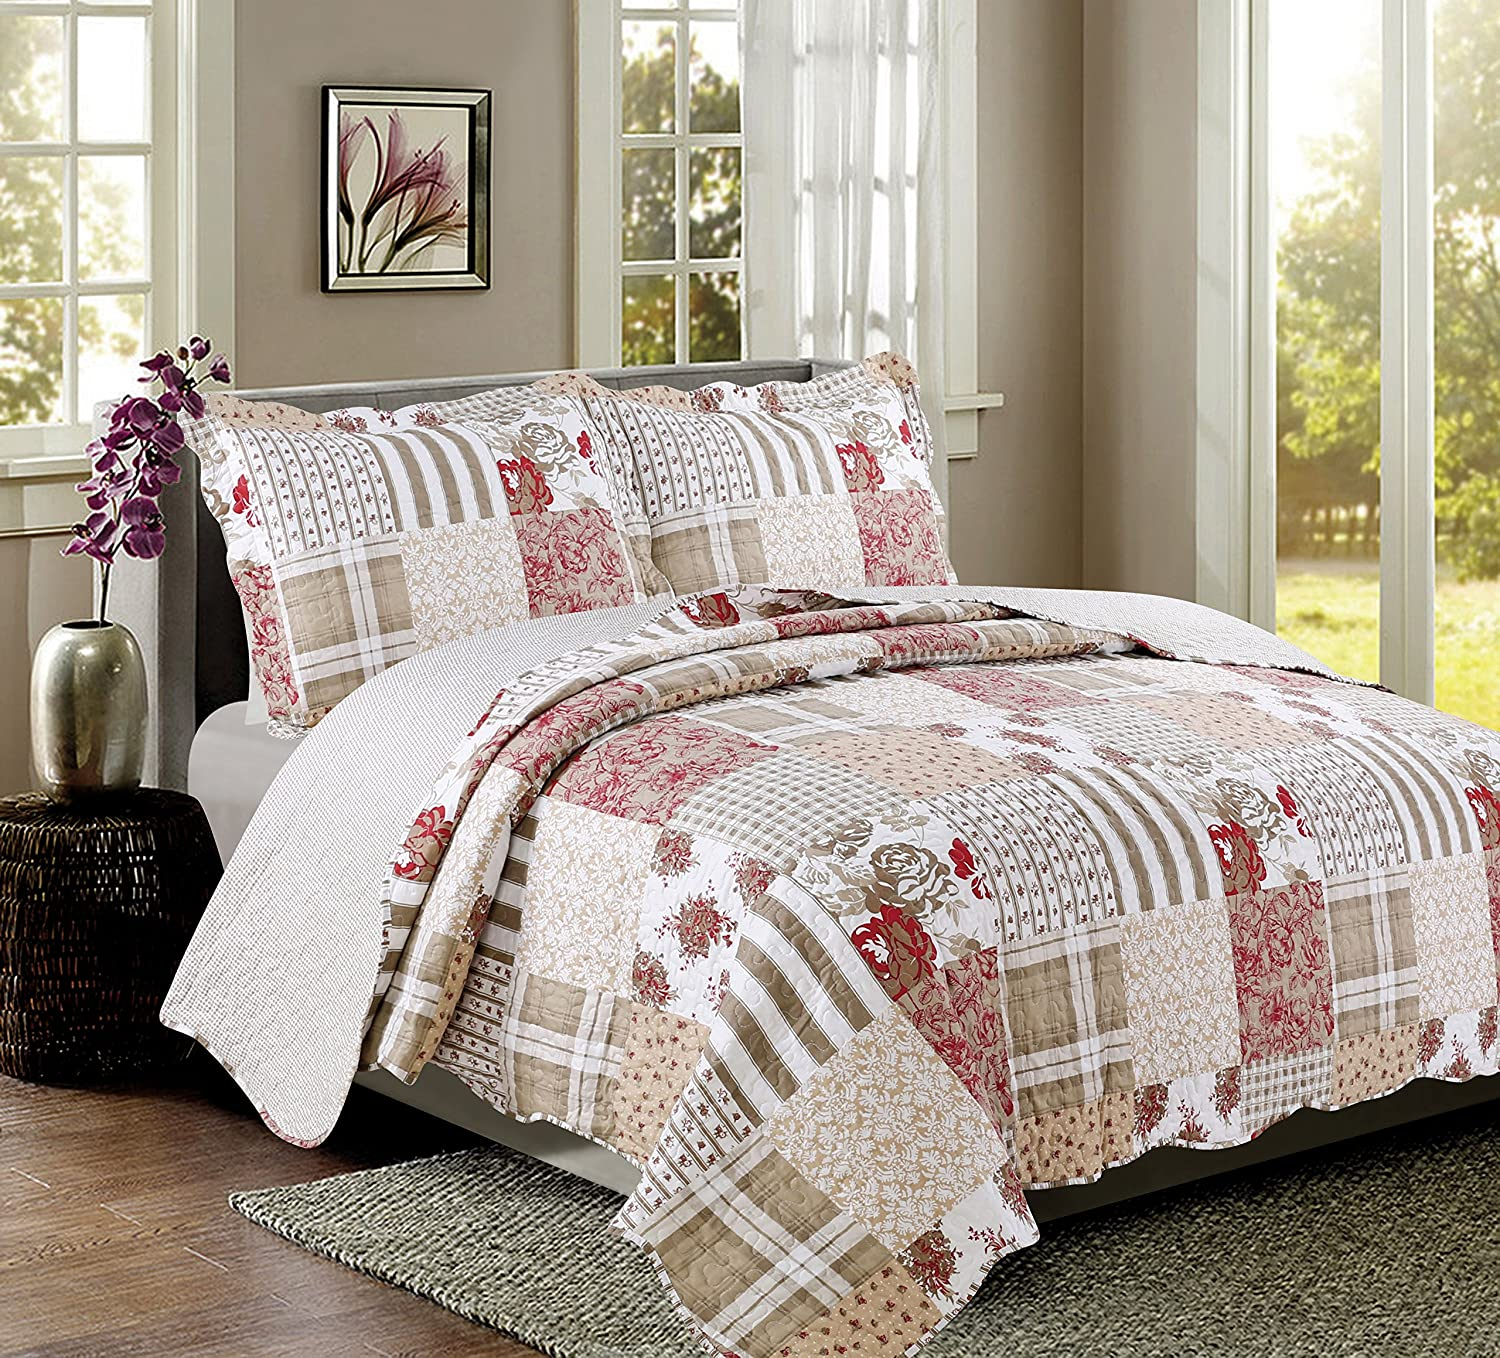 Coast to Coast Living 3-Pc Quilt Sets Luxurious Soft Hypoallergenic (Americana, Queen